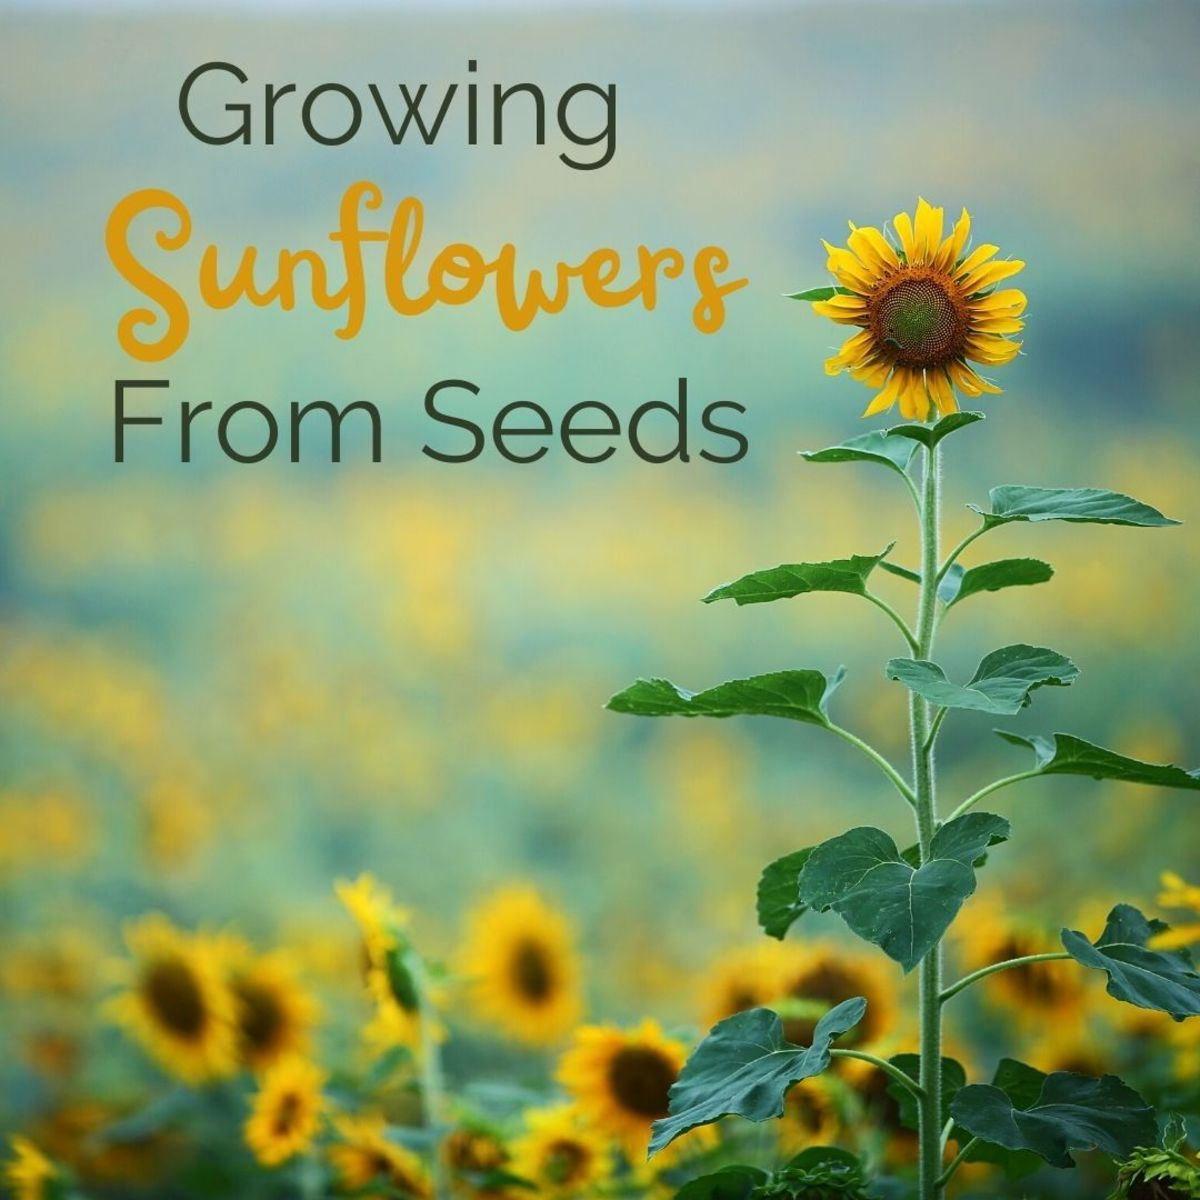 How to grow sunflowers and protect your crop